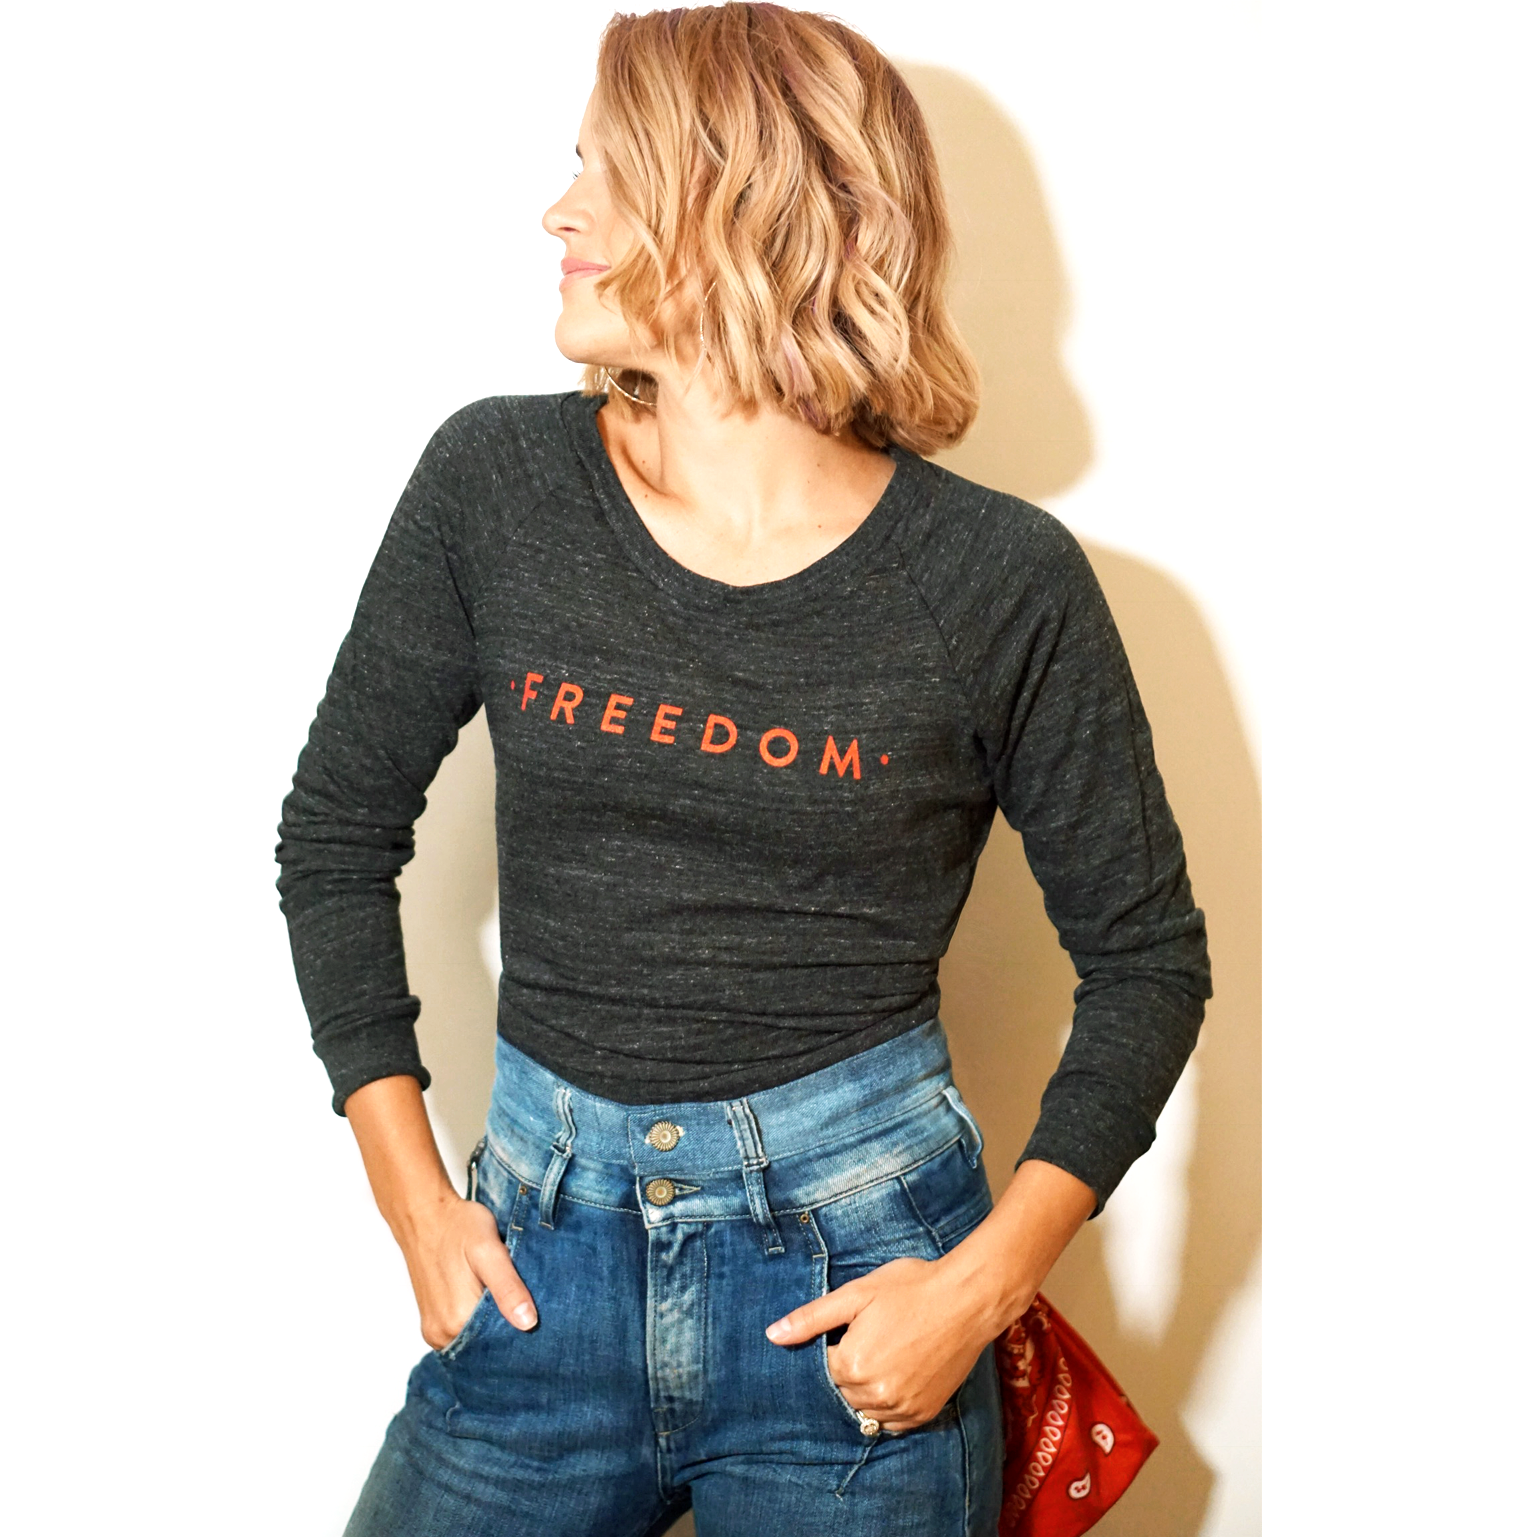 Freedom Shirt | Grey Long Sleeve